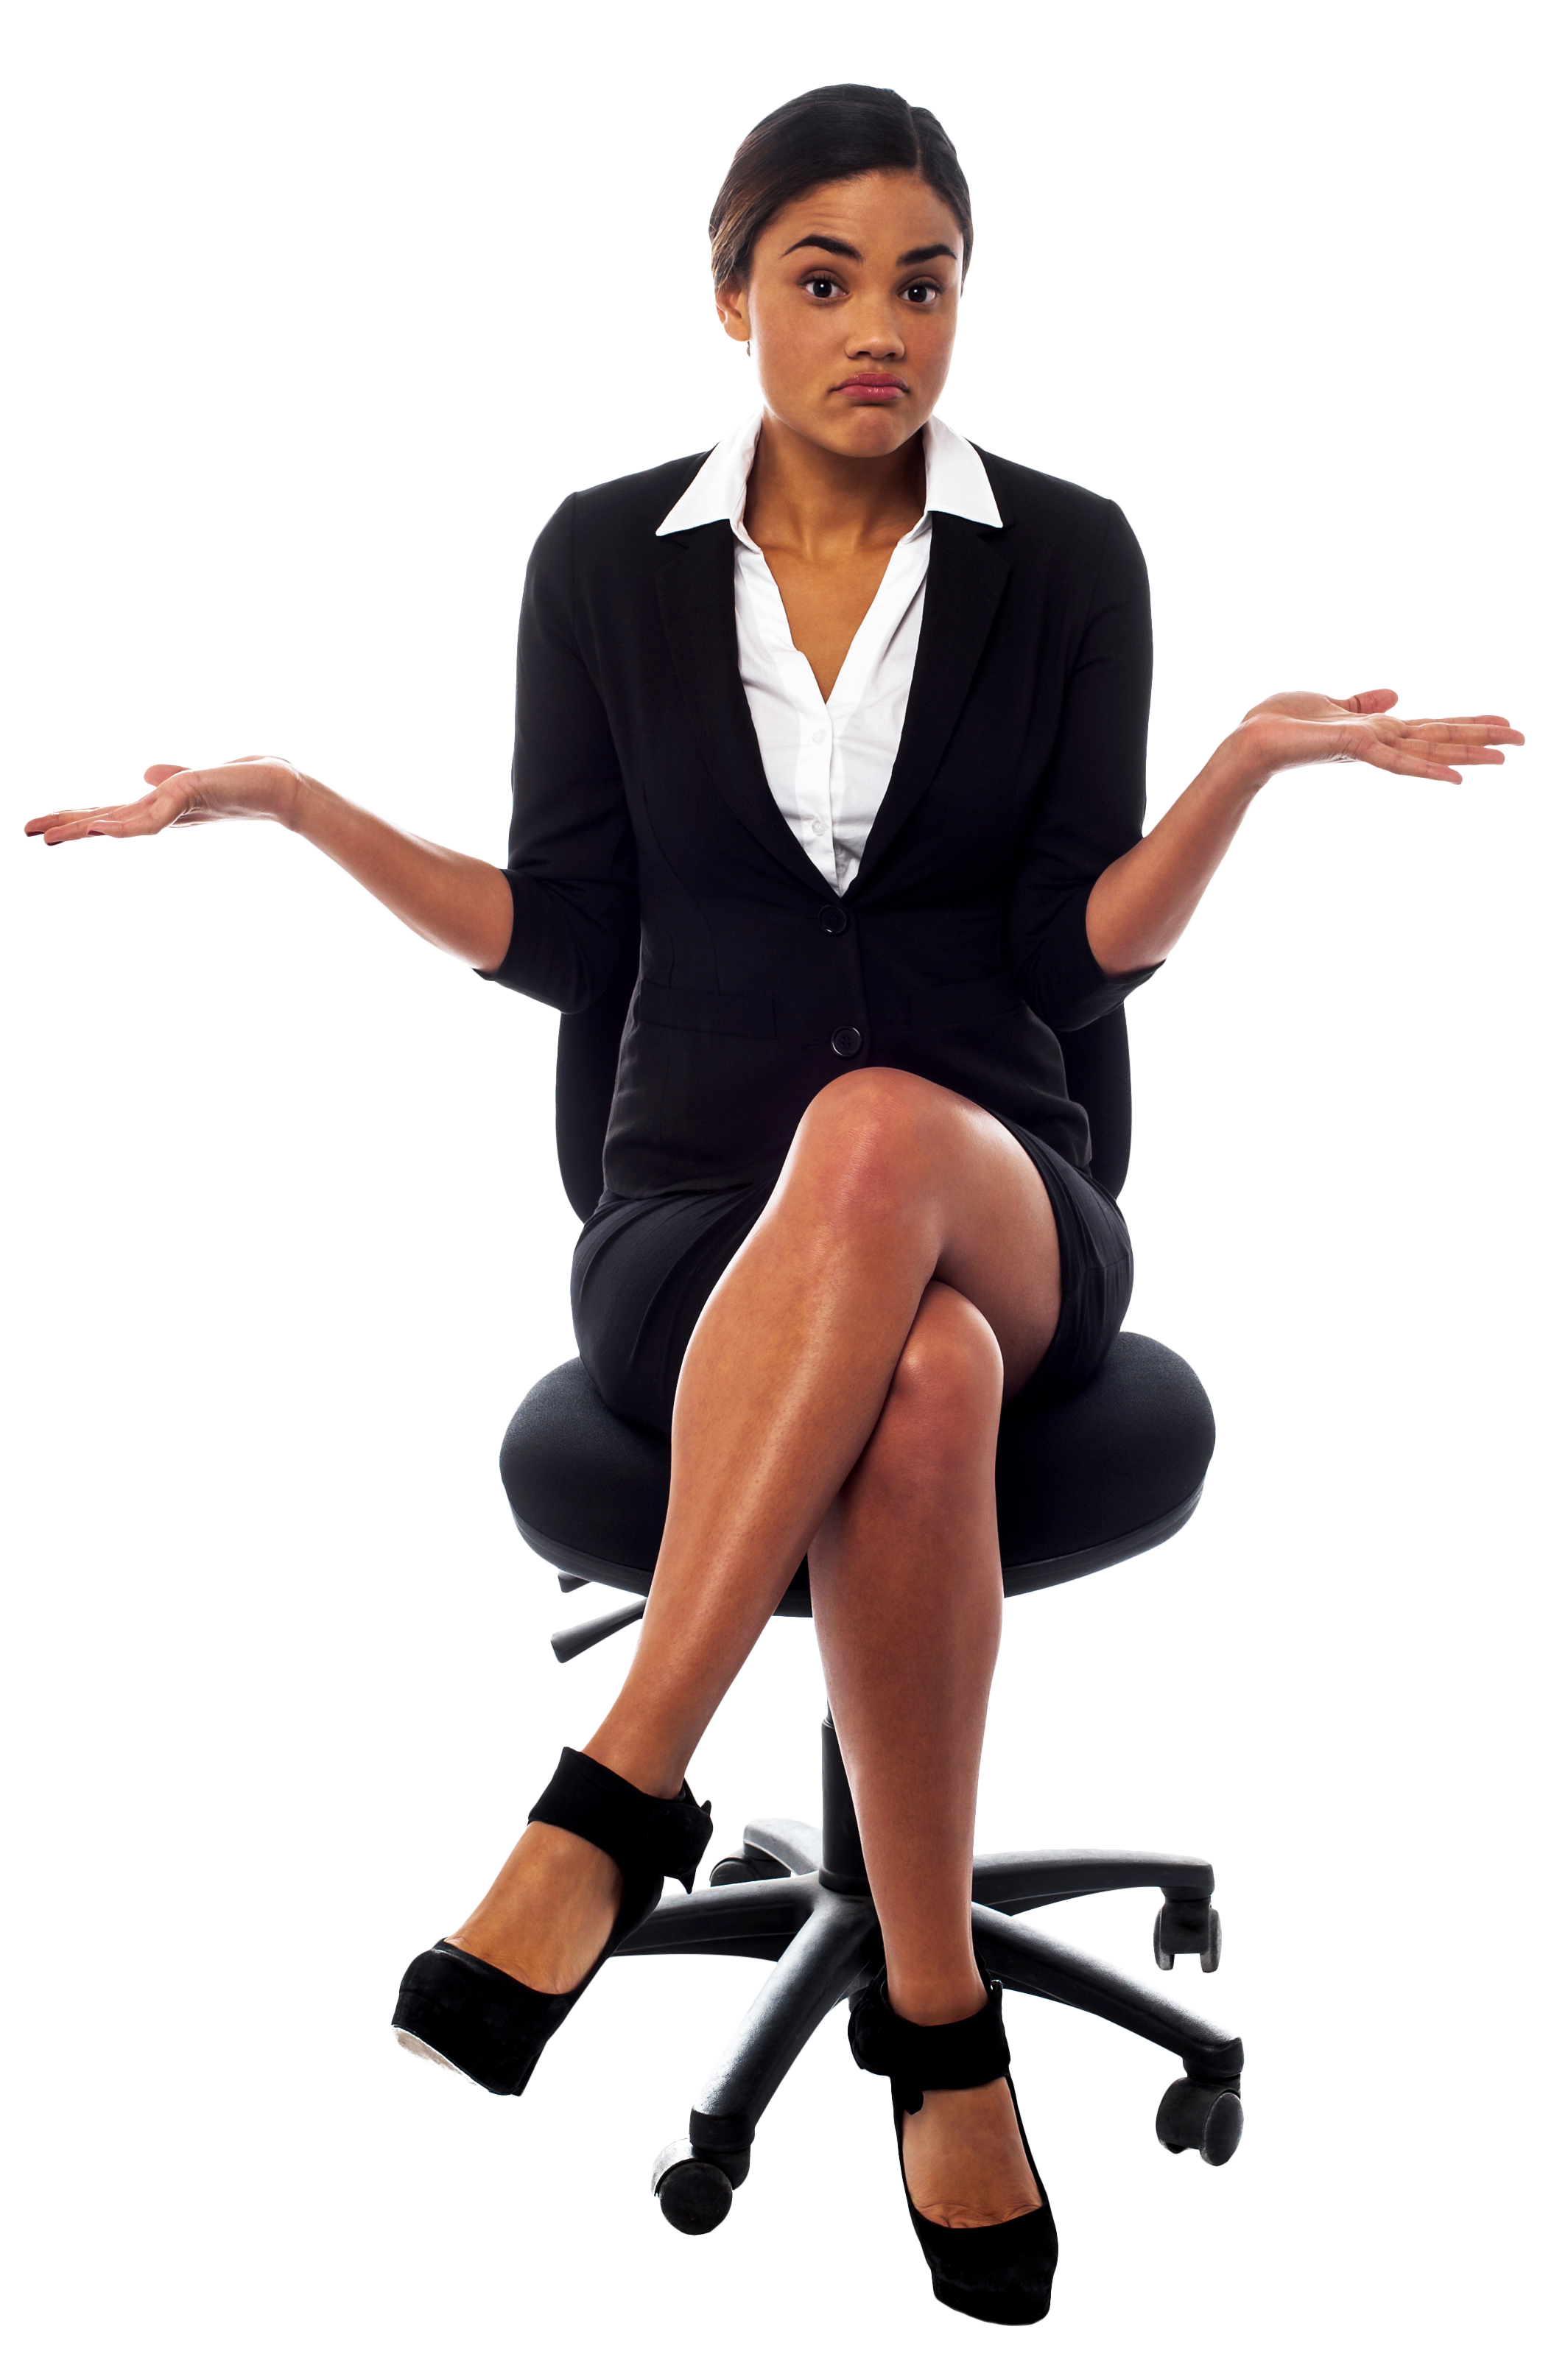 Business People PNG Images Transparent Background.